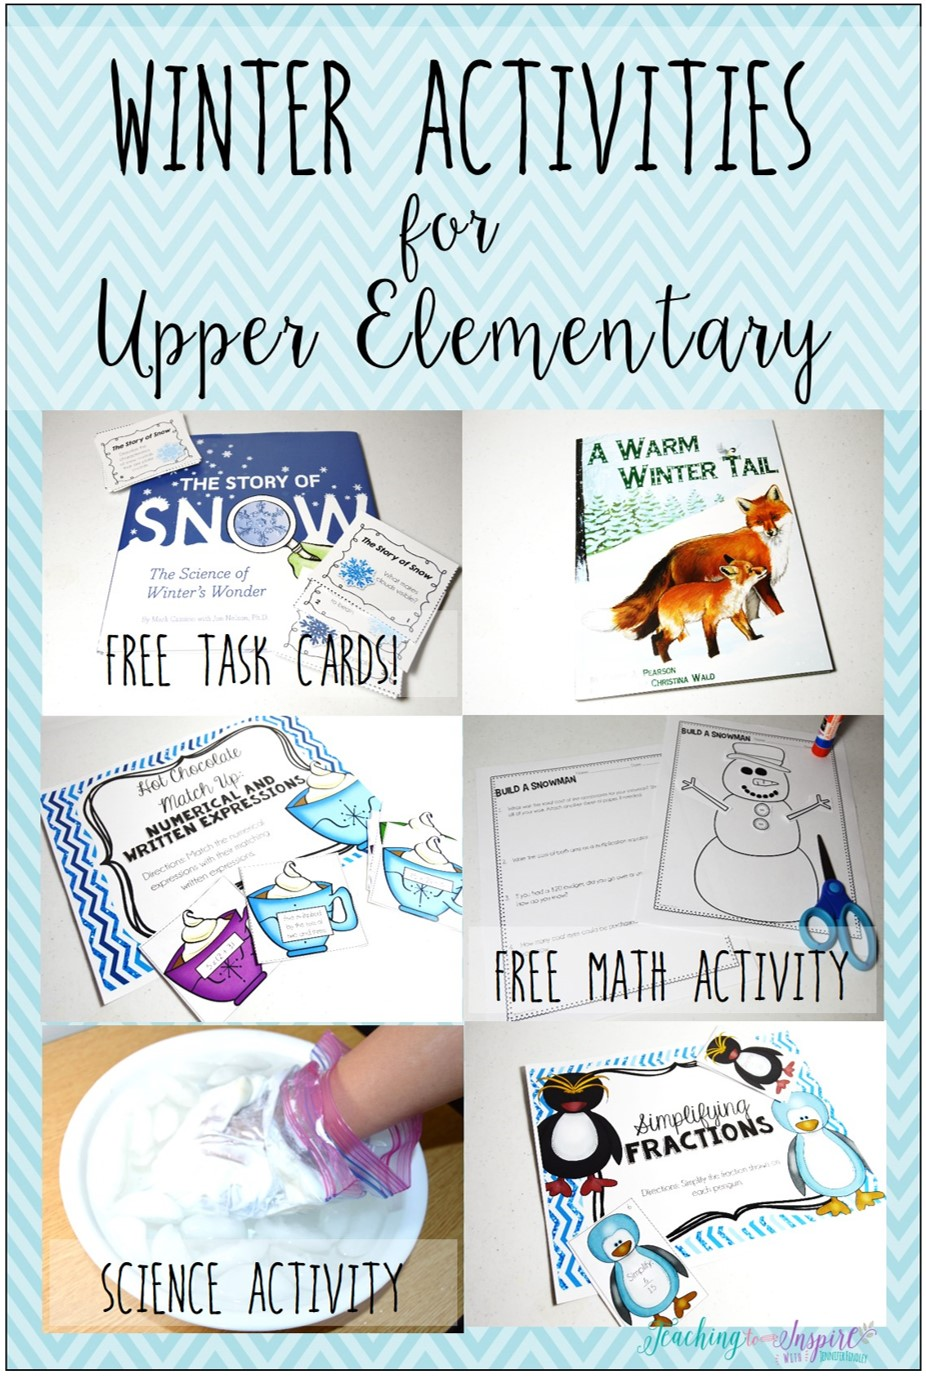 Lots of winter activities for upper elementary students, including math, literacy, and science.